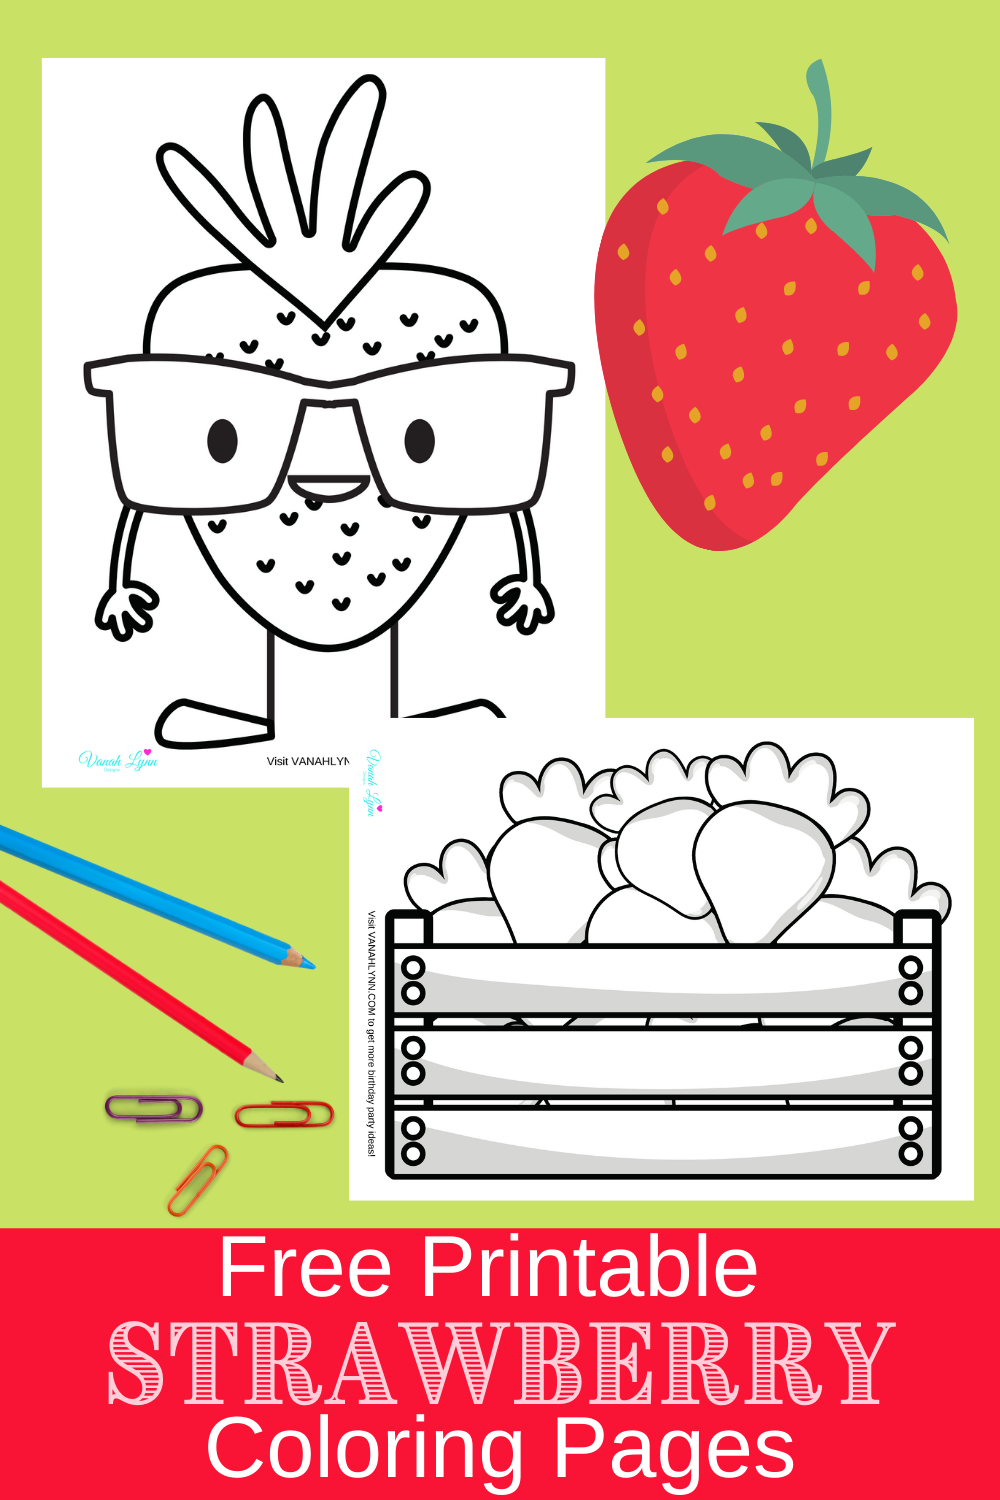 free printable strawberry coloring sheets for baby girl